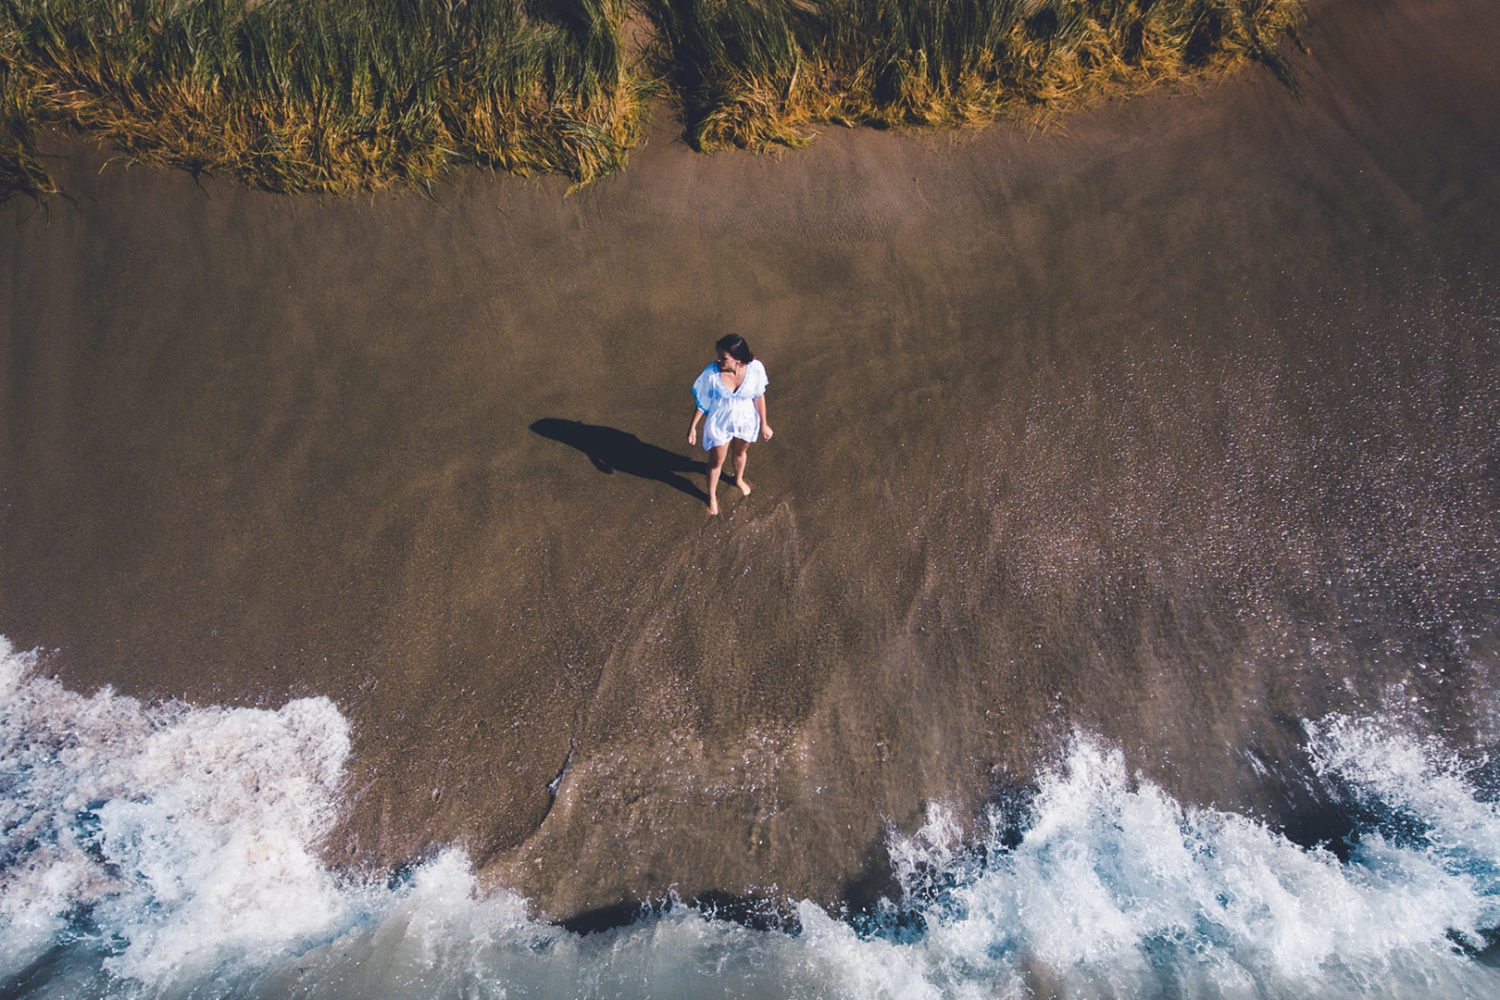 How to crash your drone while taking photos (and maybe how to avoid it)